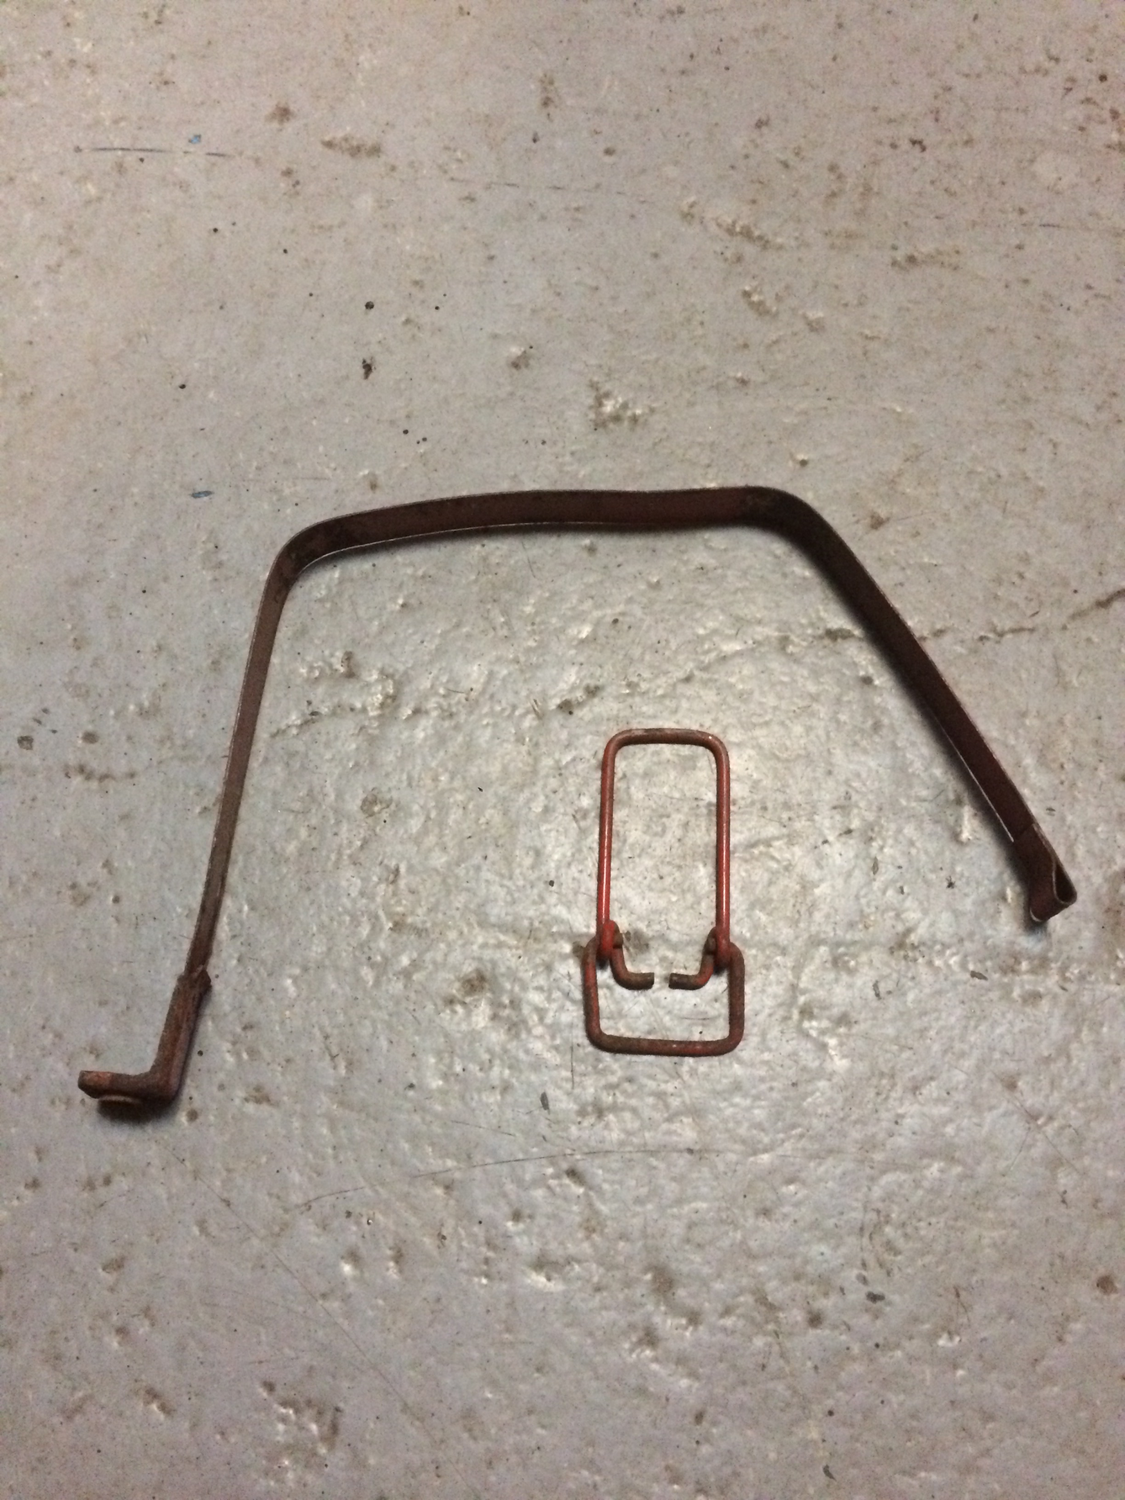 Type 2 battery strap